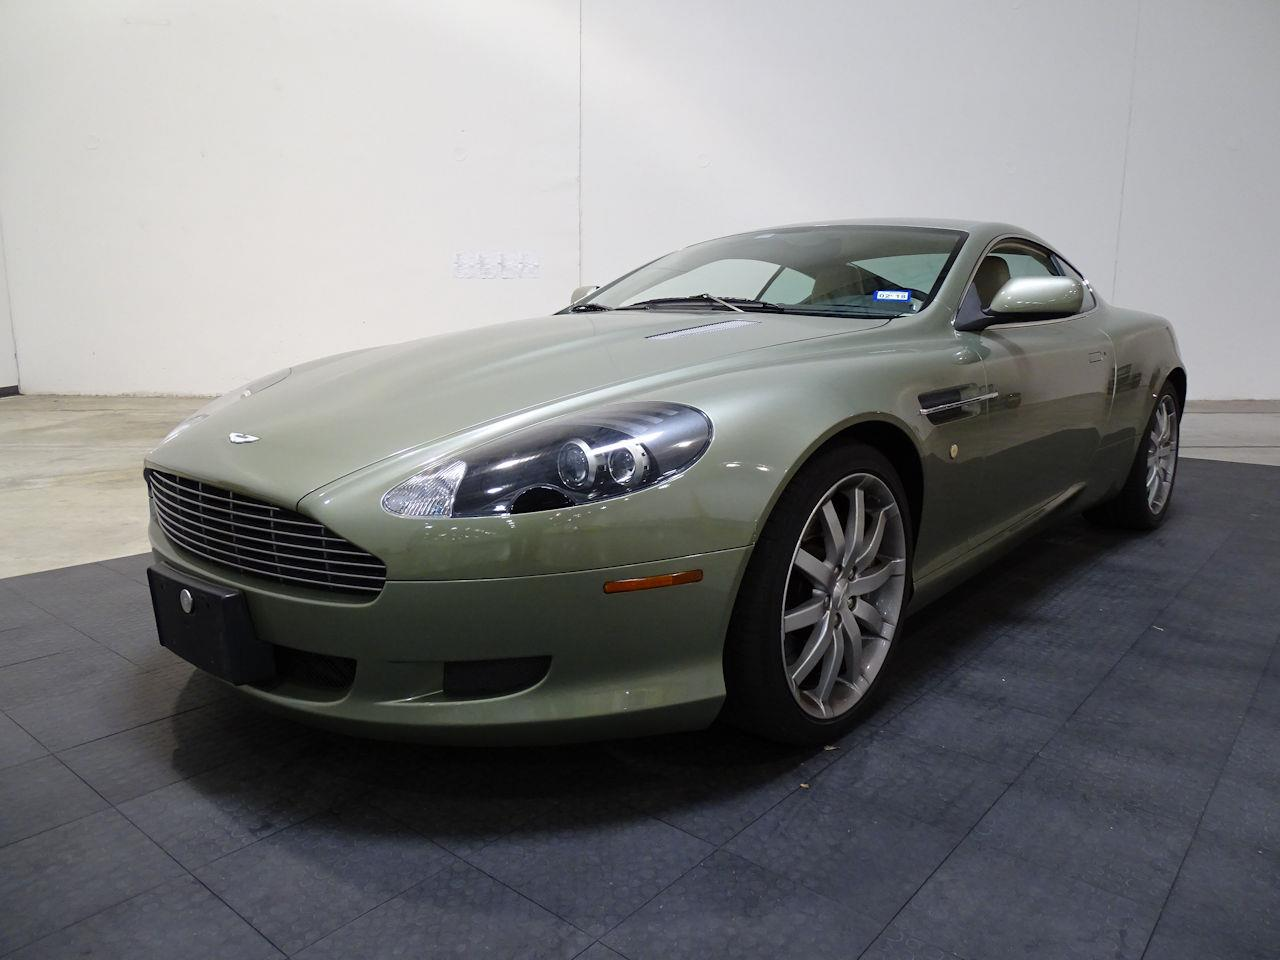 Large Picture of '05 DB9 located in Texas - $58,000.00 - L7ZM